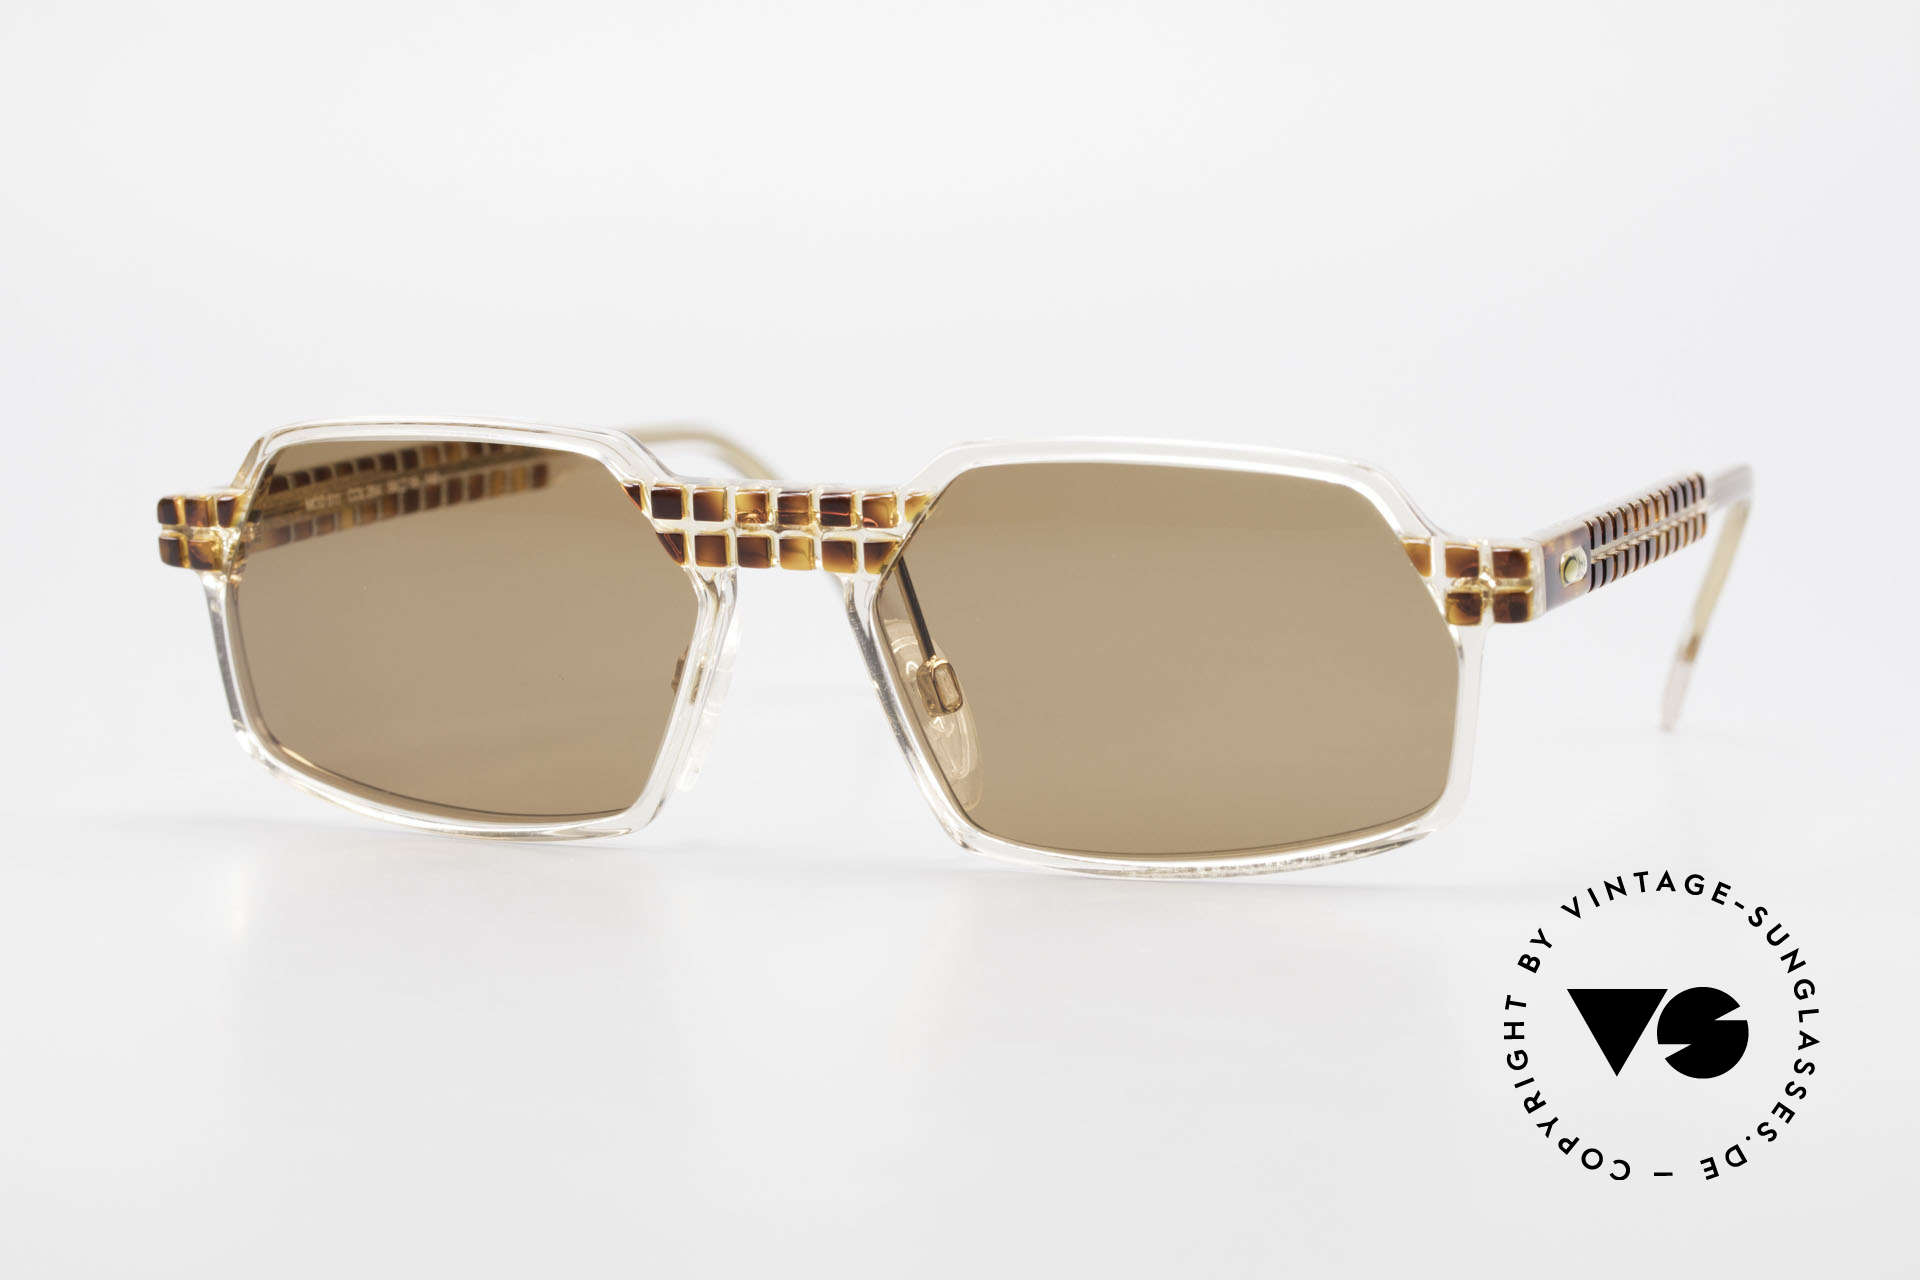 Cazal 511 Limited 90's Cazal Sunglasses, rare Cazal vintage glasses of the Crystal 500's Series, Made for Men and Women